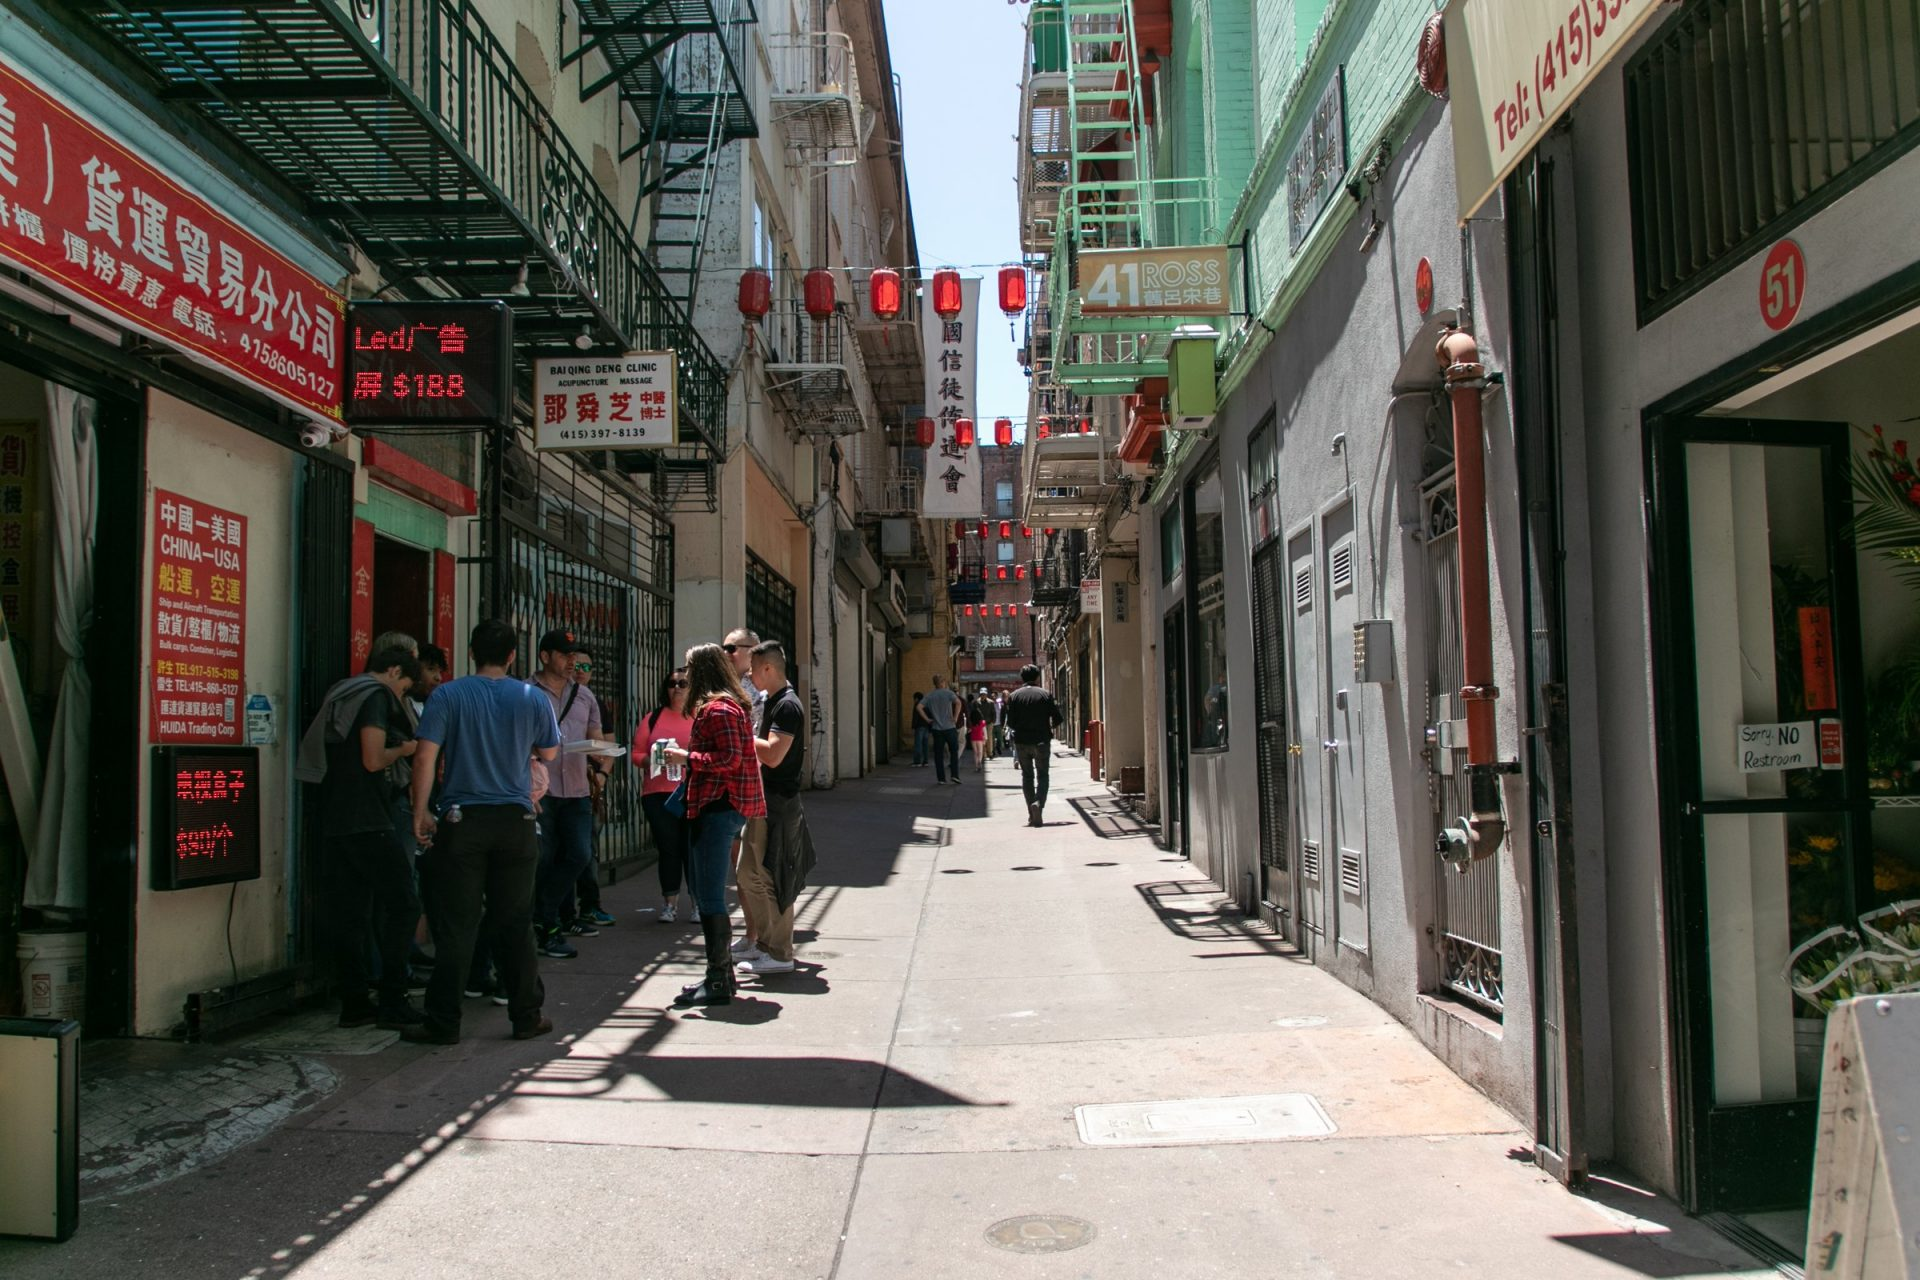 Group Of People Standing In Chinatown Street